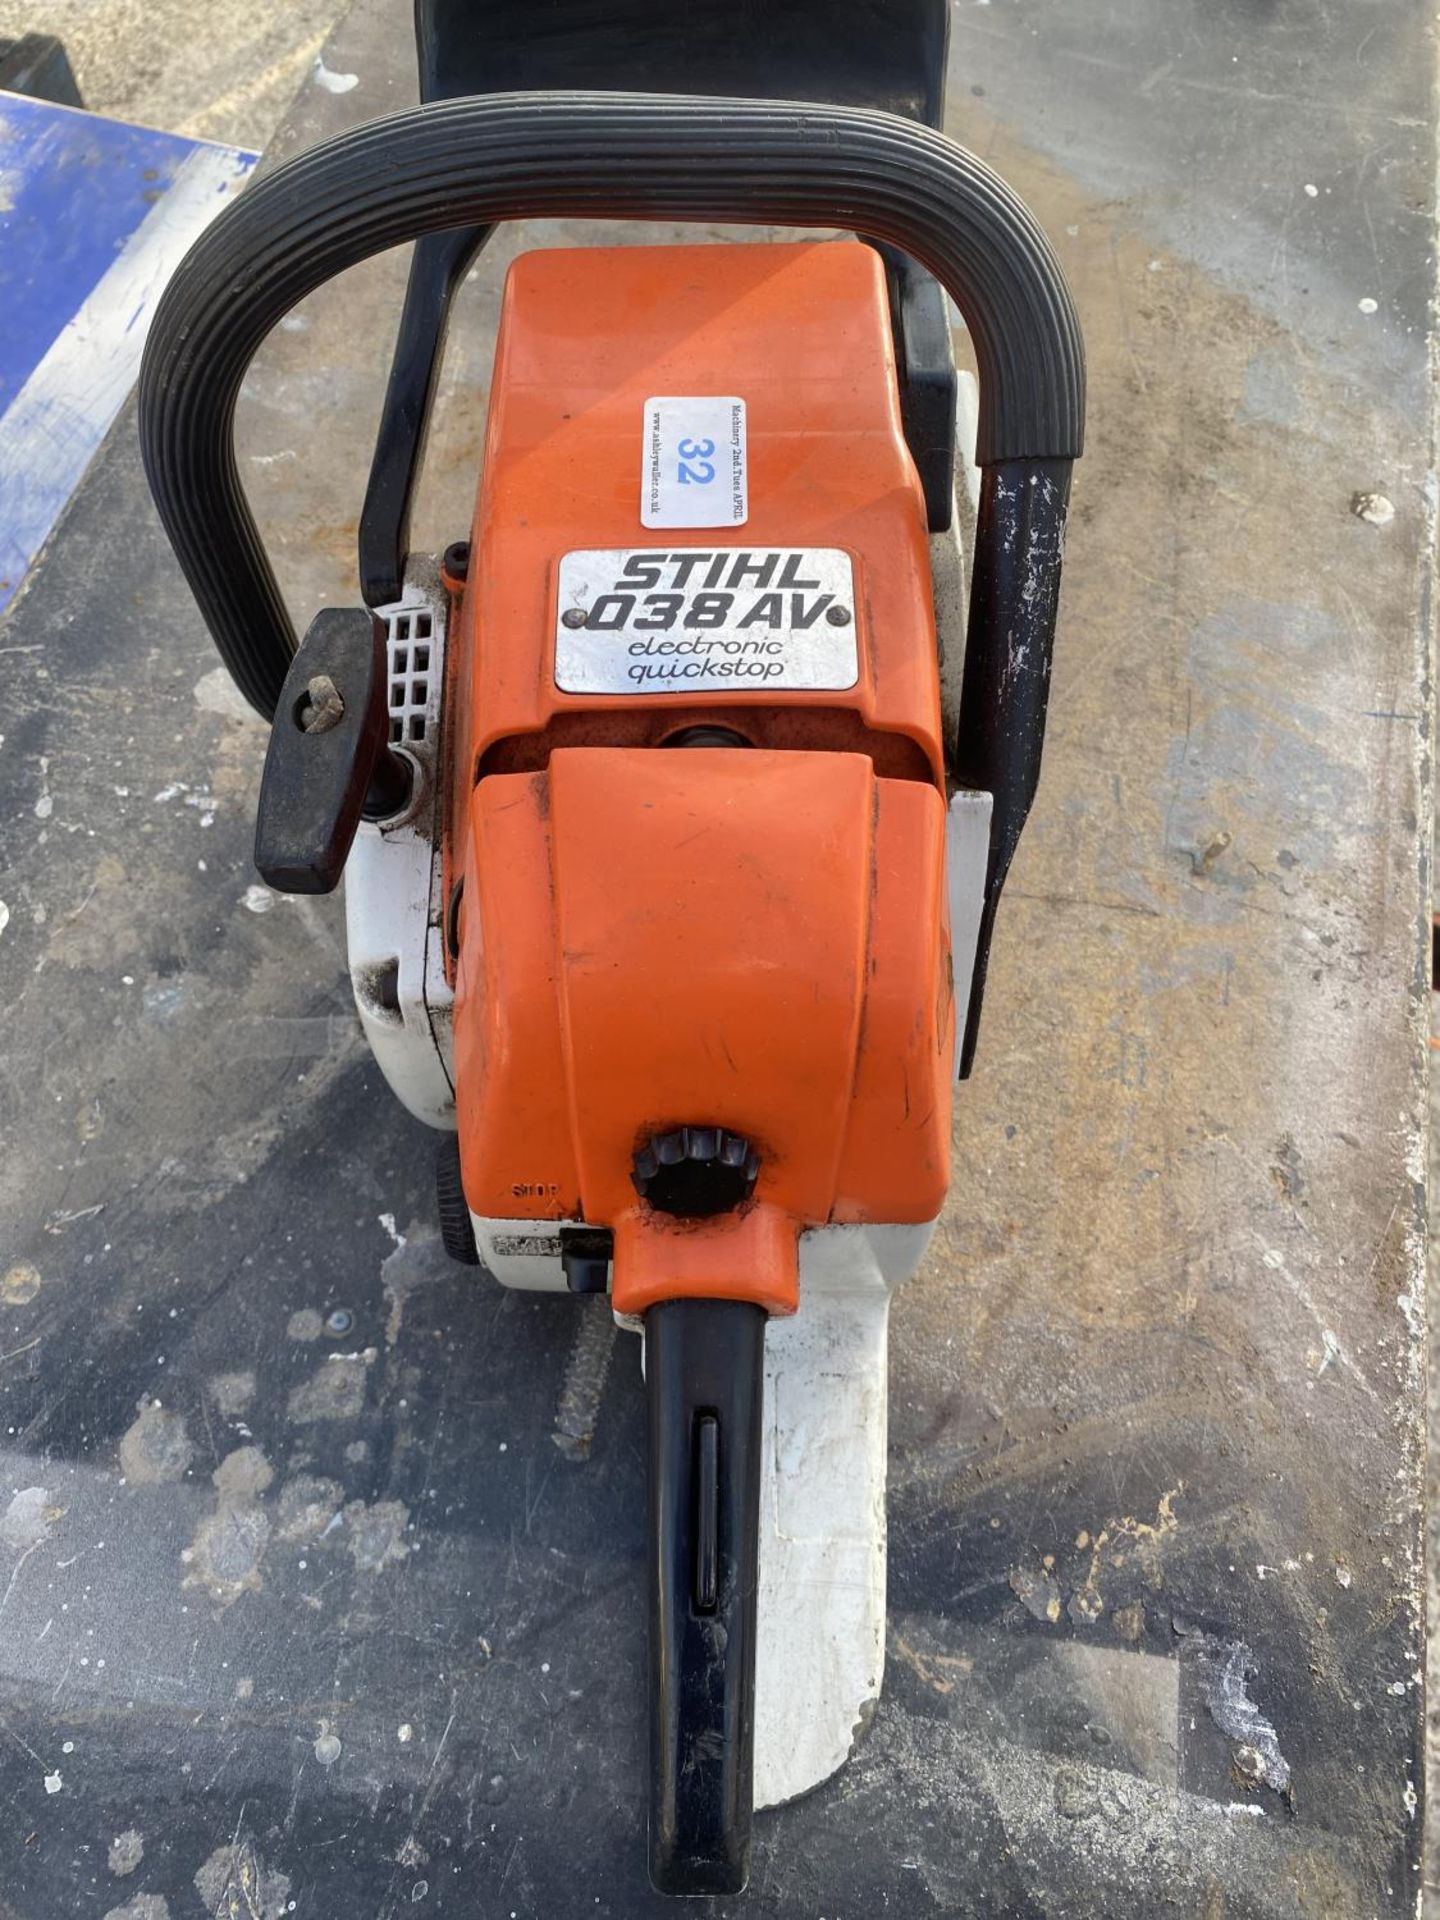 A STHIL 038 AV ELECTRONIC QUICKSTOP CHAIN SAW NO VAT - Image 3 of 5